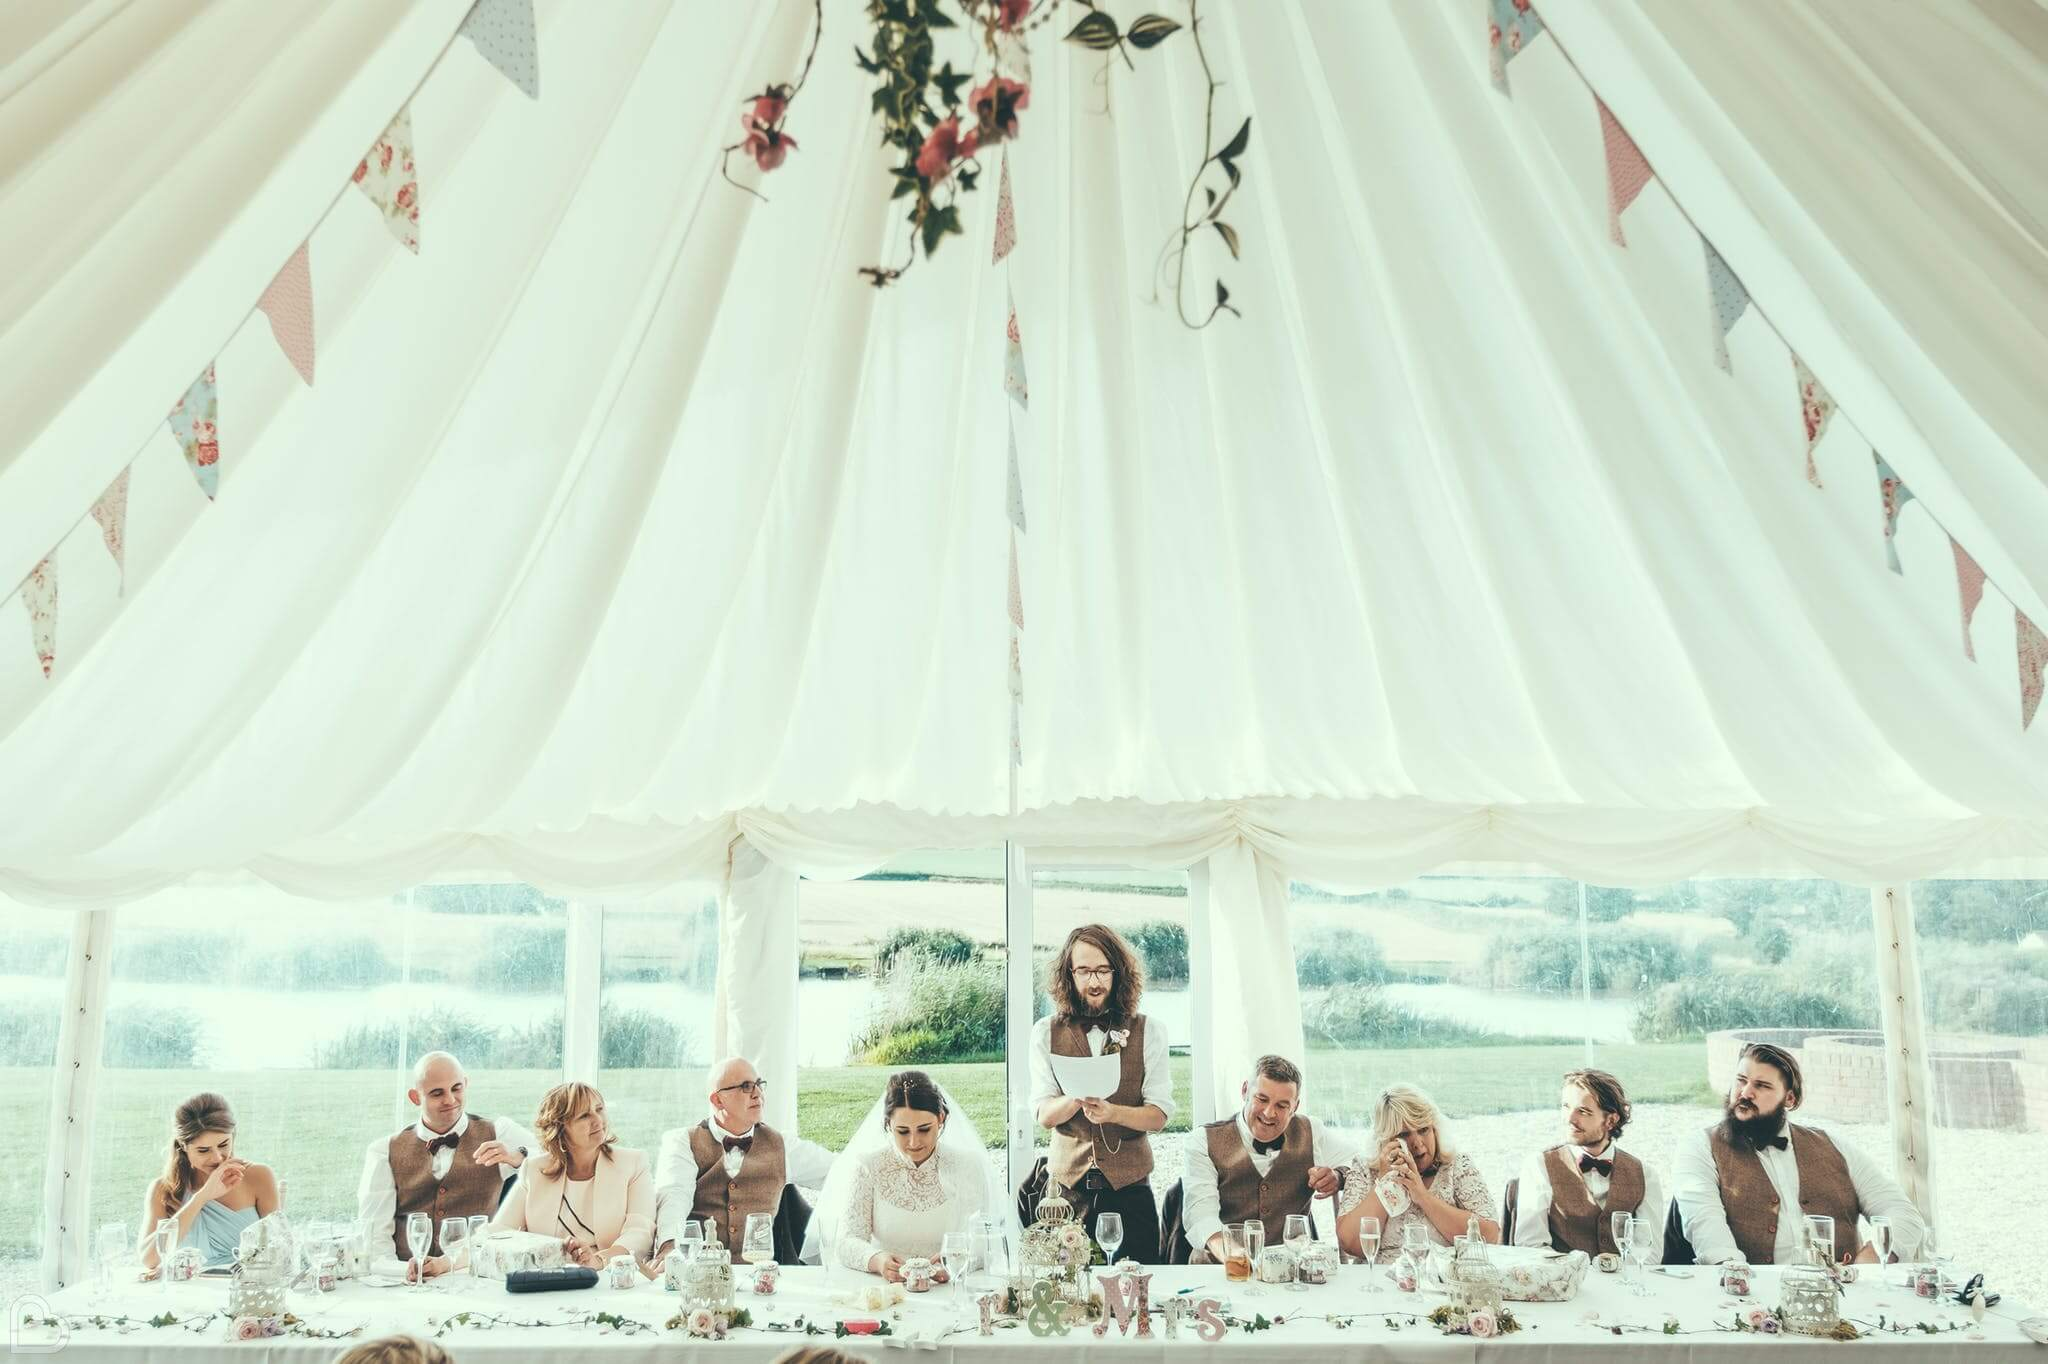 Wedding party taking place at the quantock lackes marquee, a marquee wedding venues in the uk